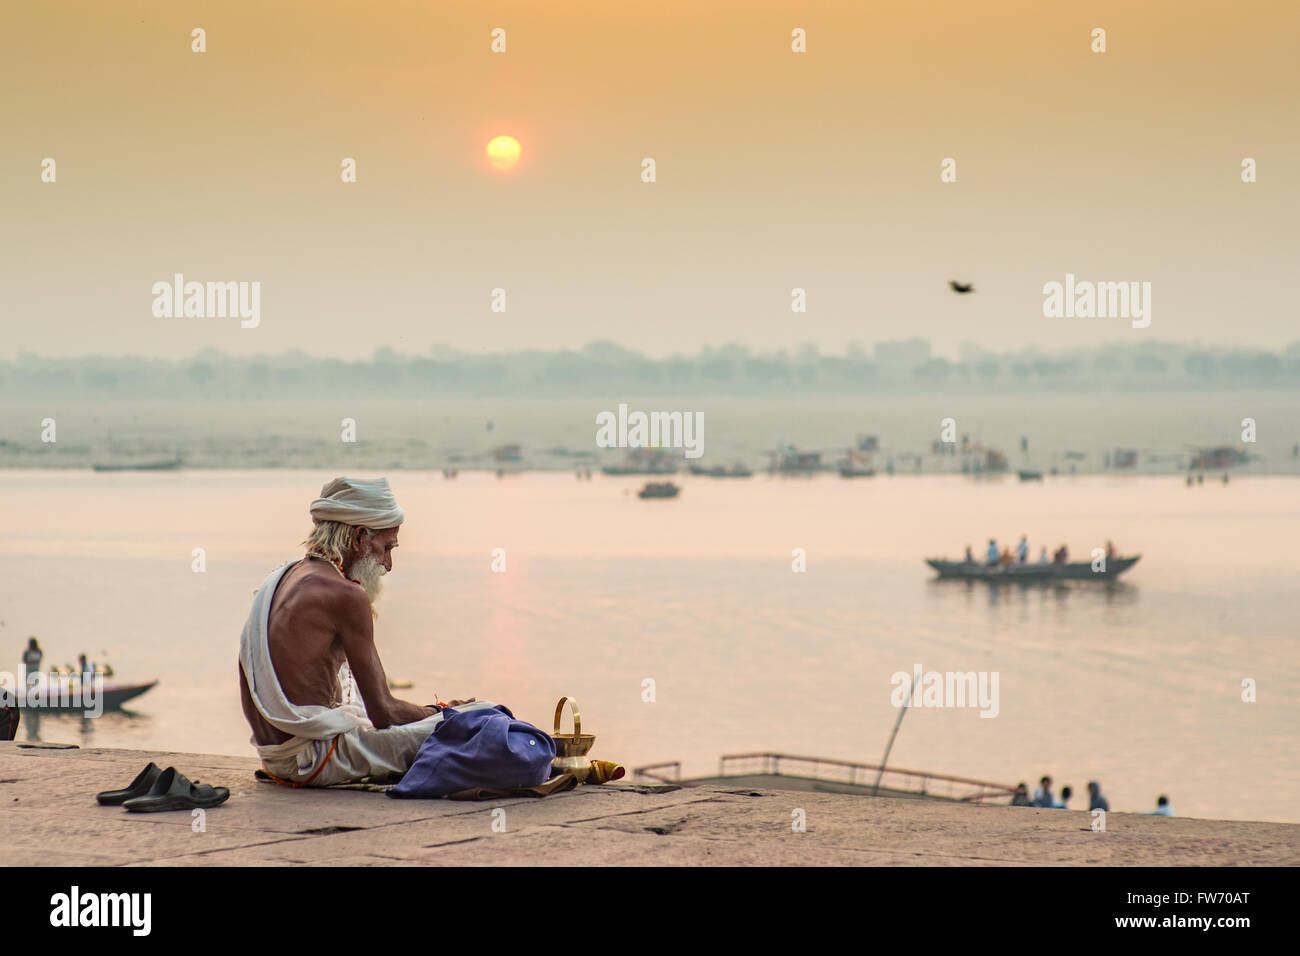 A Sadhu (Hindu religious devotee) is sitting by the holy river Ganges in Varanasi as the sun rises in the background. - Stock Image